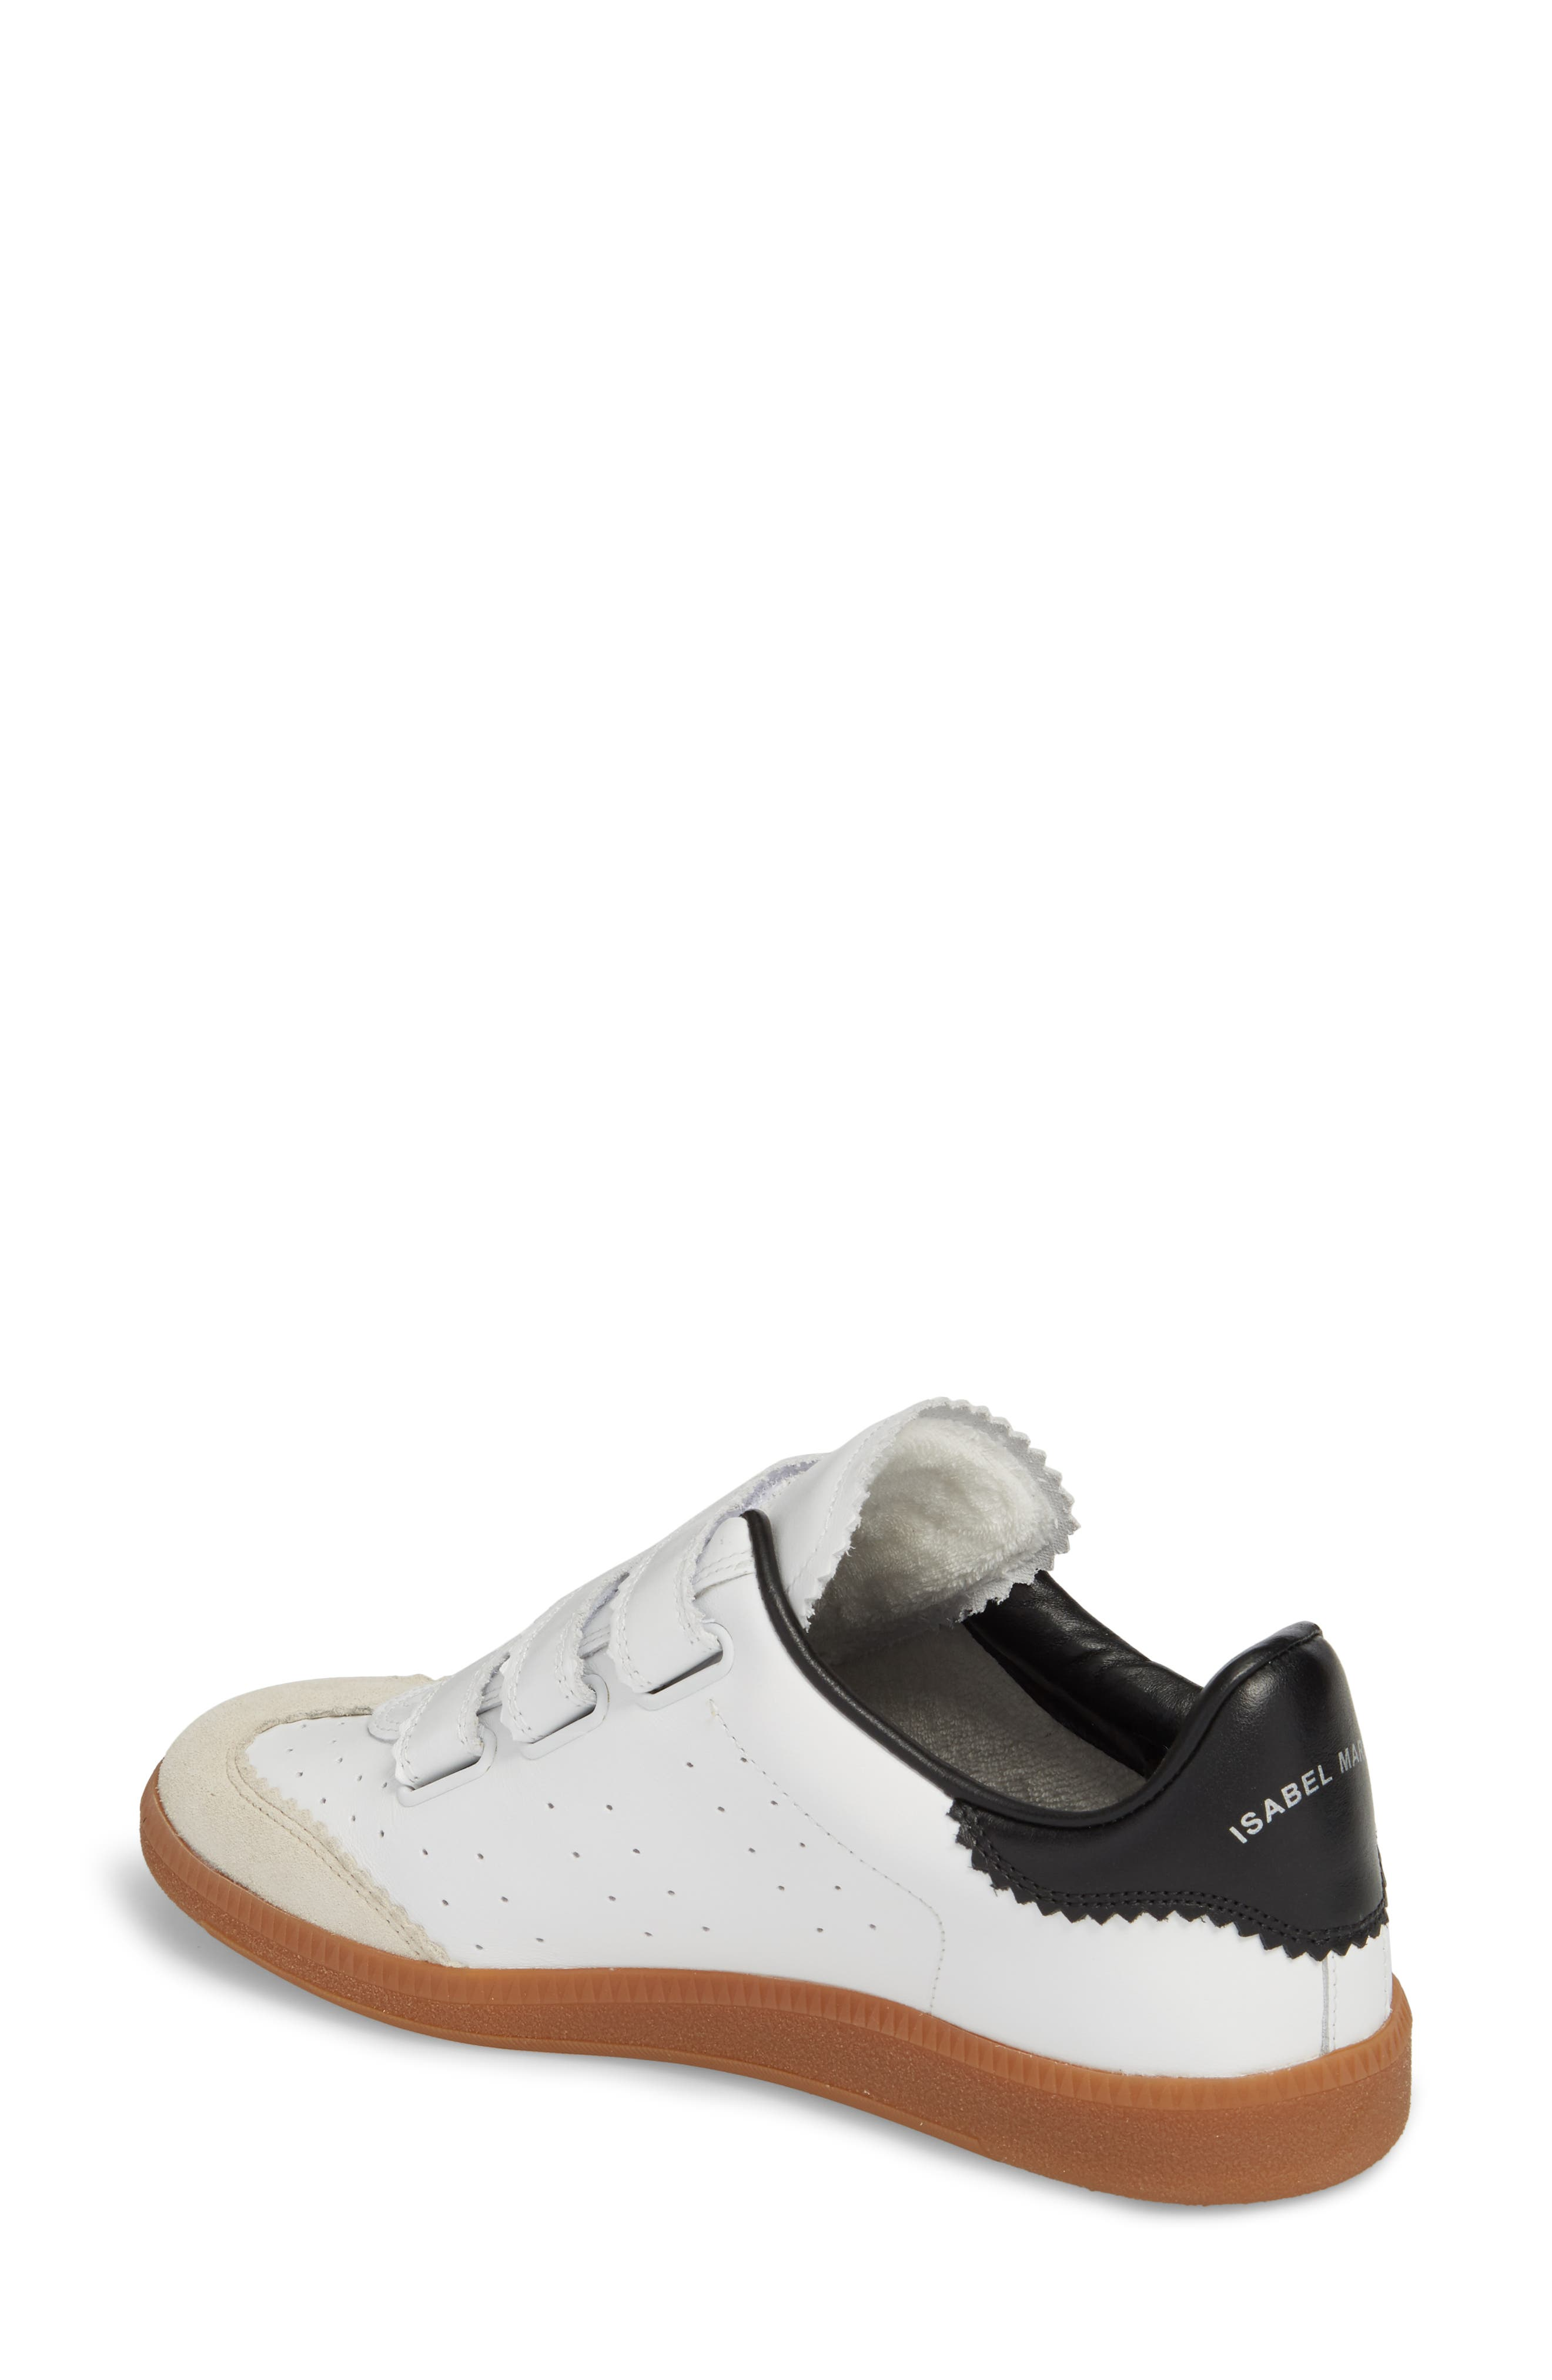 Isabel Marant Beth Low Top Sneaker,                             Alternate thumbnail 2, color,                             White